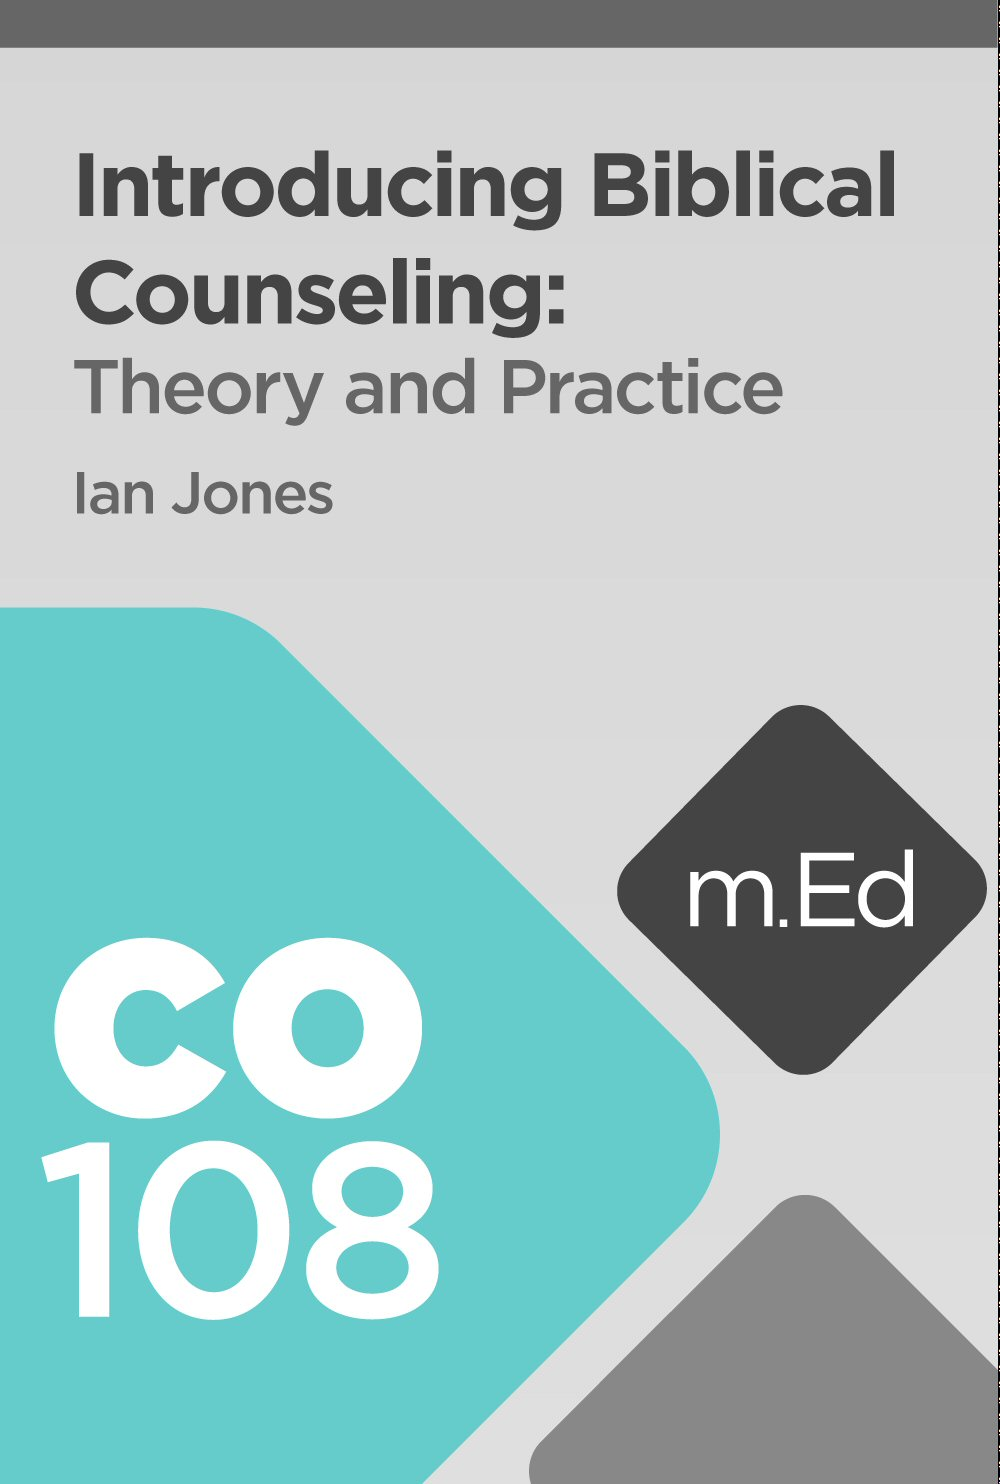 Mobile Ed: CO108 Introducing Biblical Counseling: Theory and Practice (7 hour course)